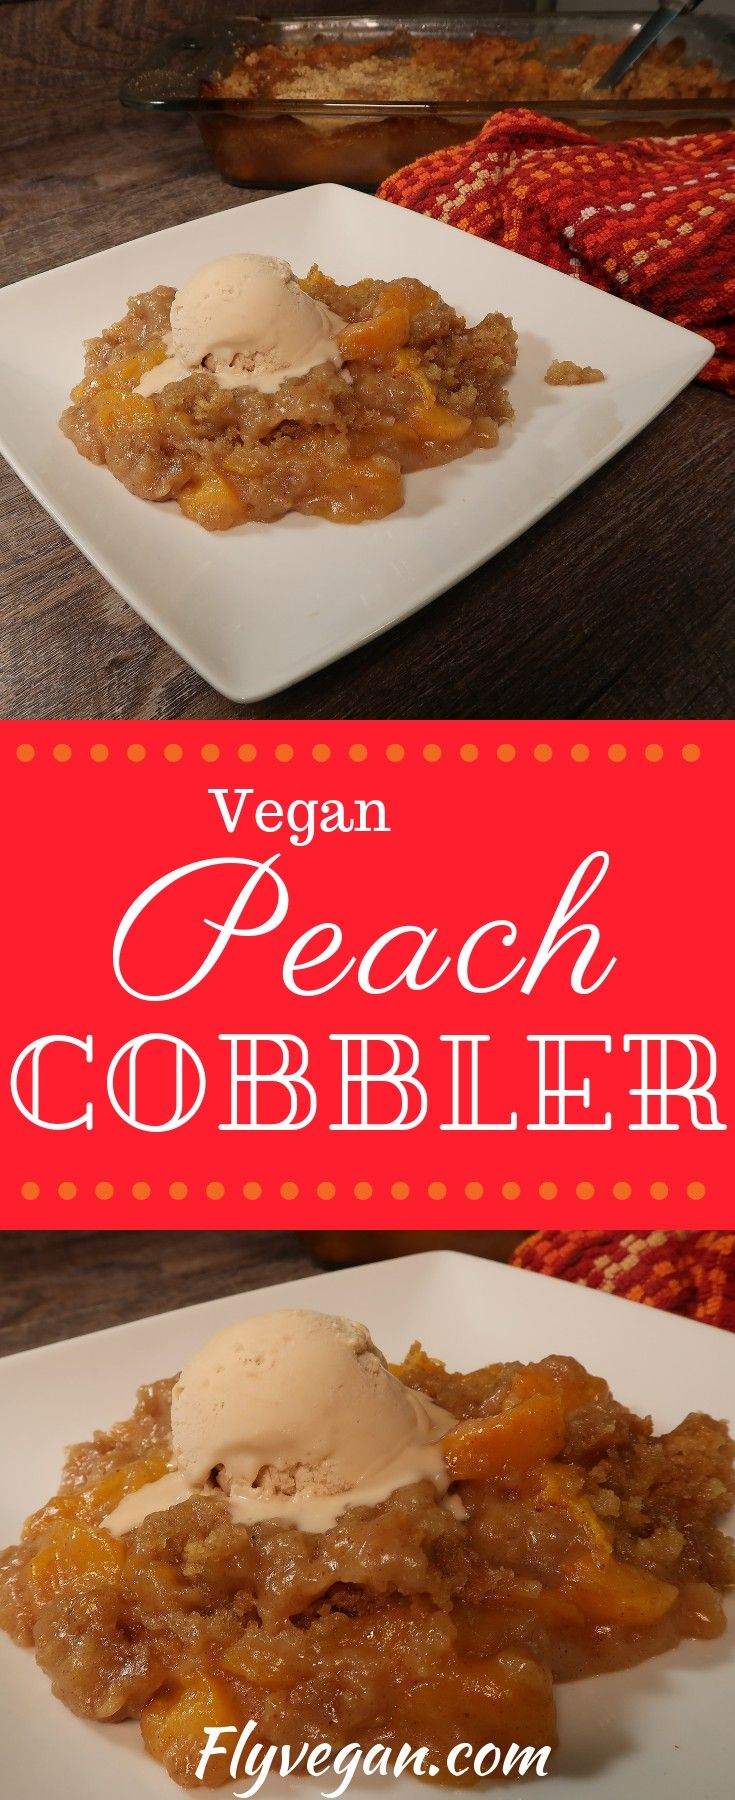 Peach Cobbler Recipe Vegan Perfect For The Holidays And A